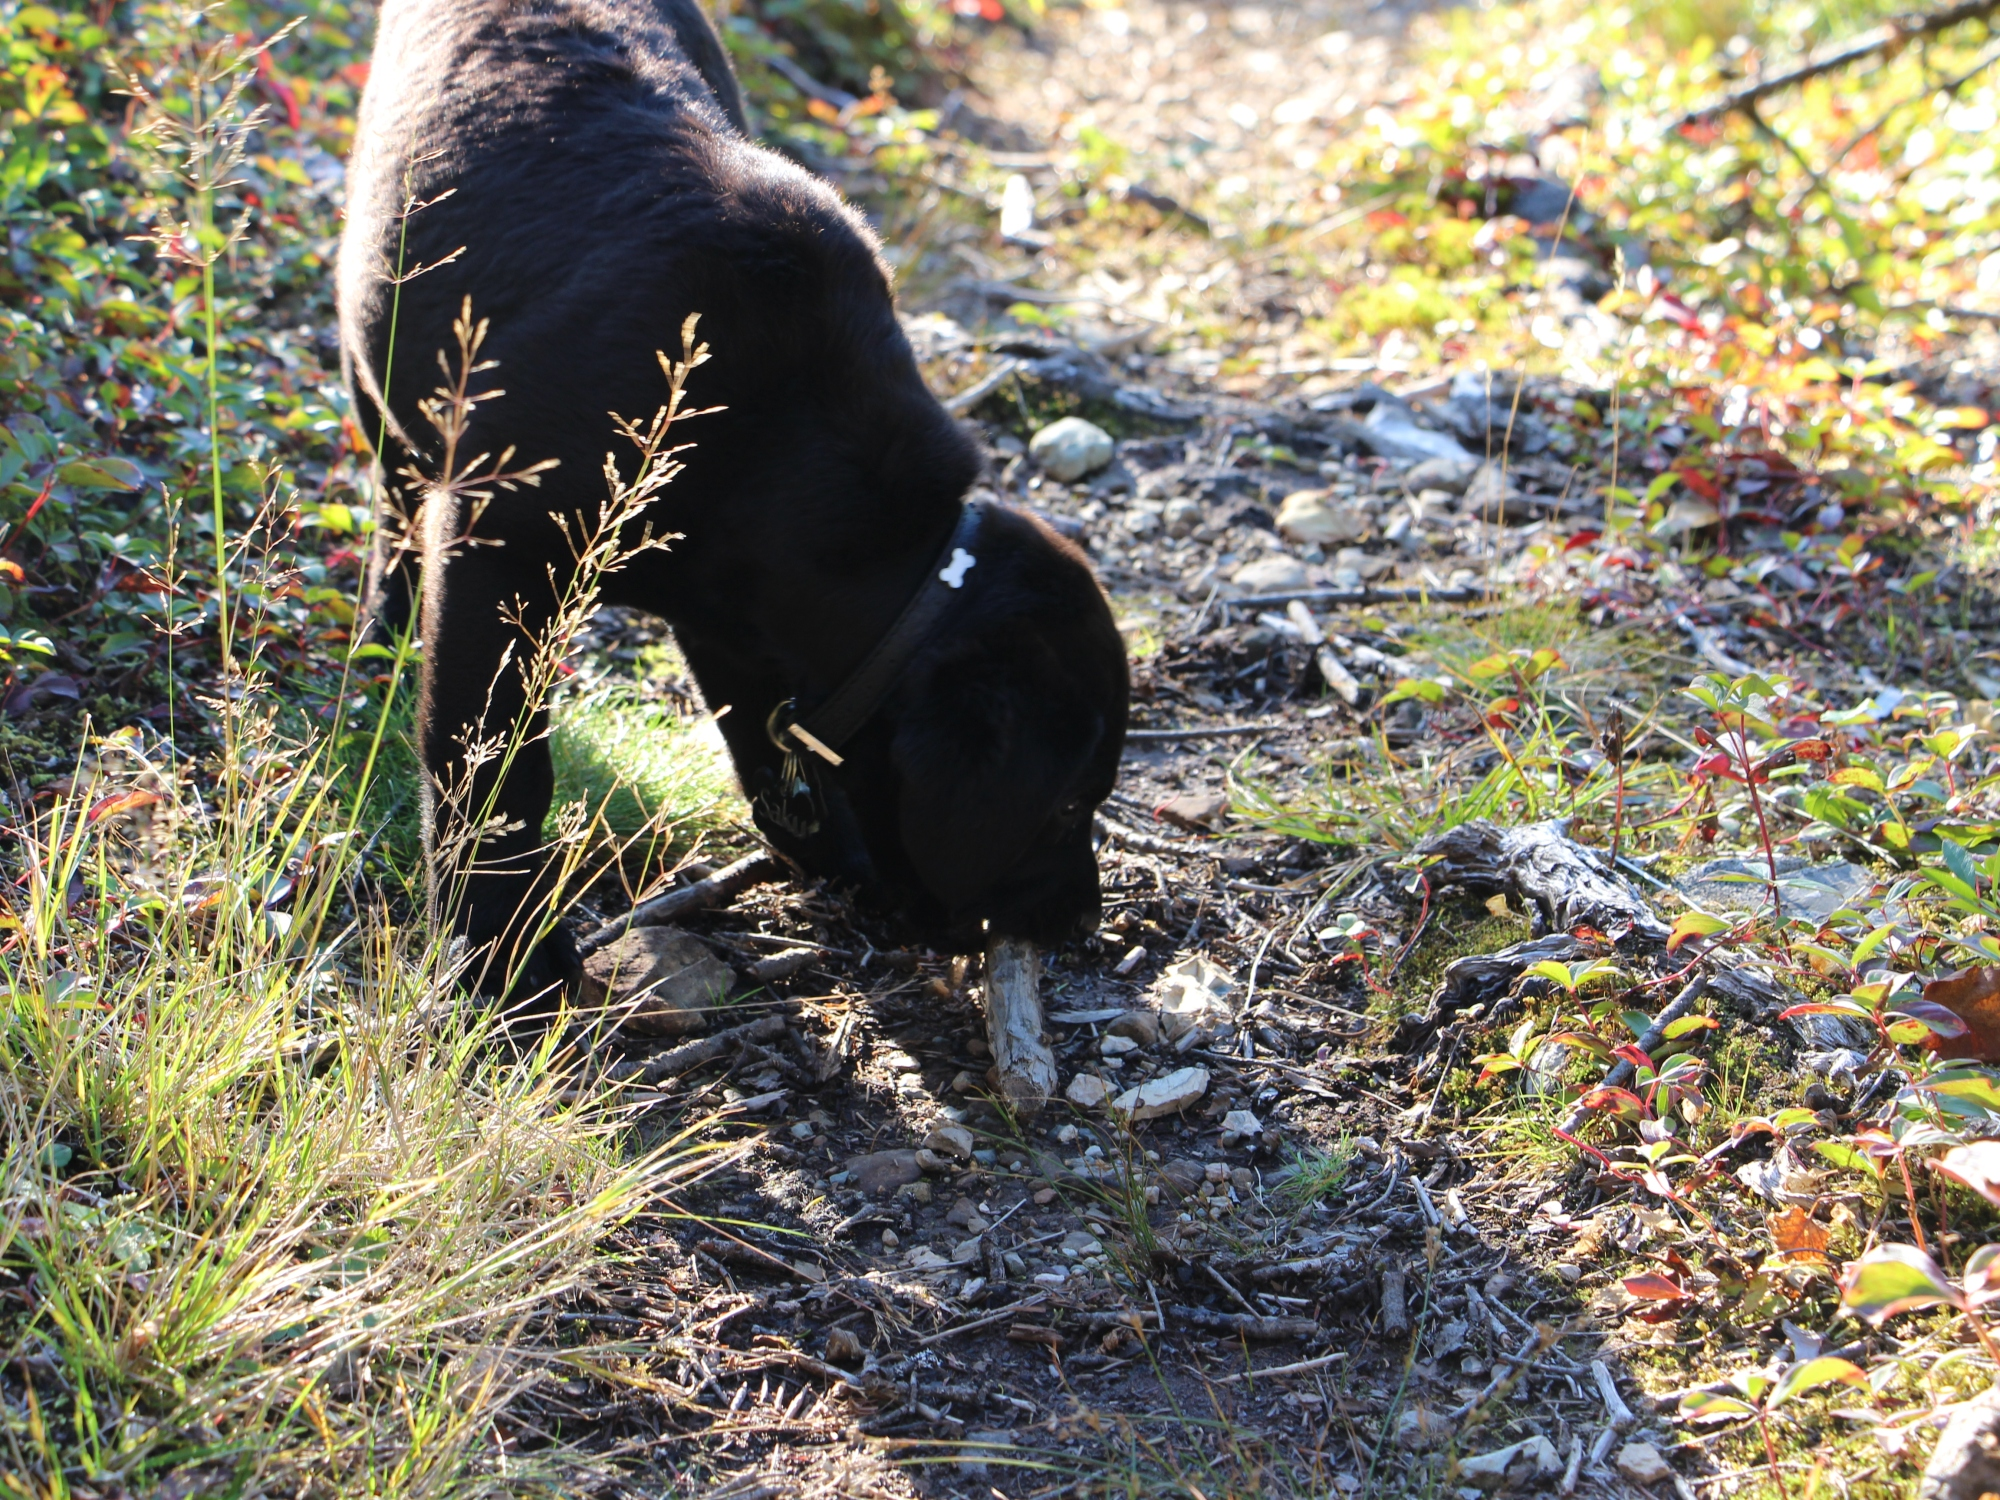 Cape Shore Water Dogs, Bough Beds and Leaving No Trace – NL EXPLORER